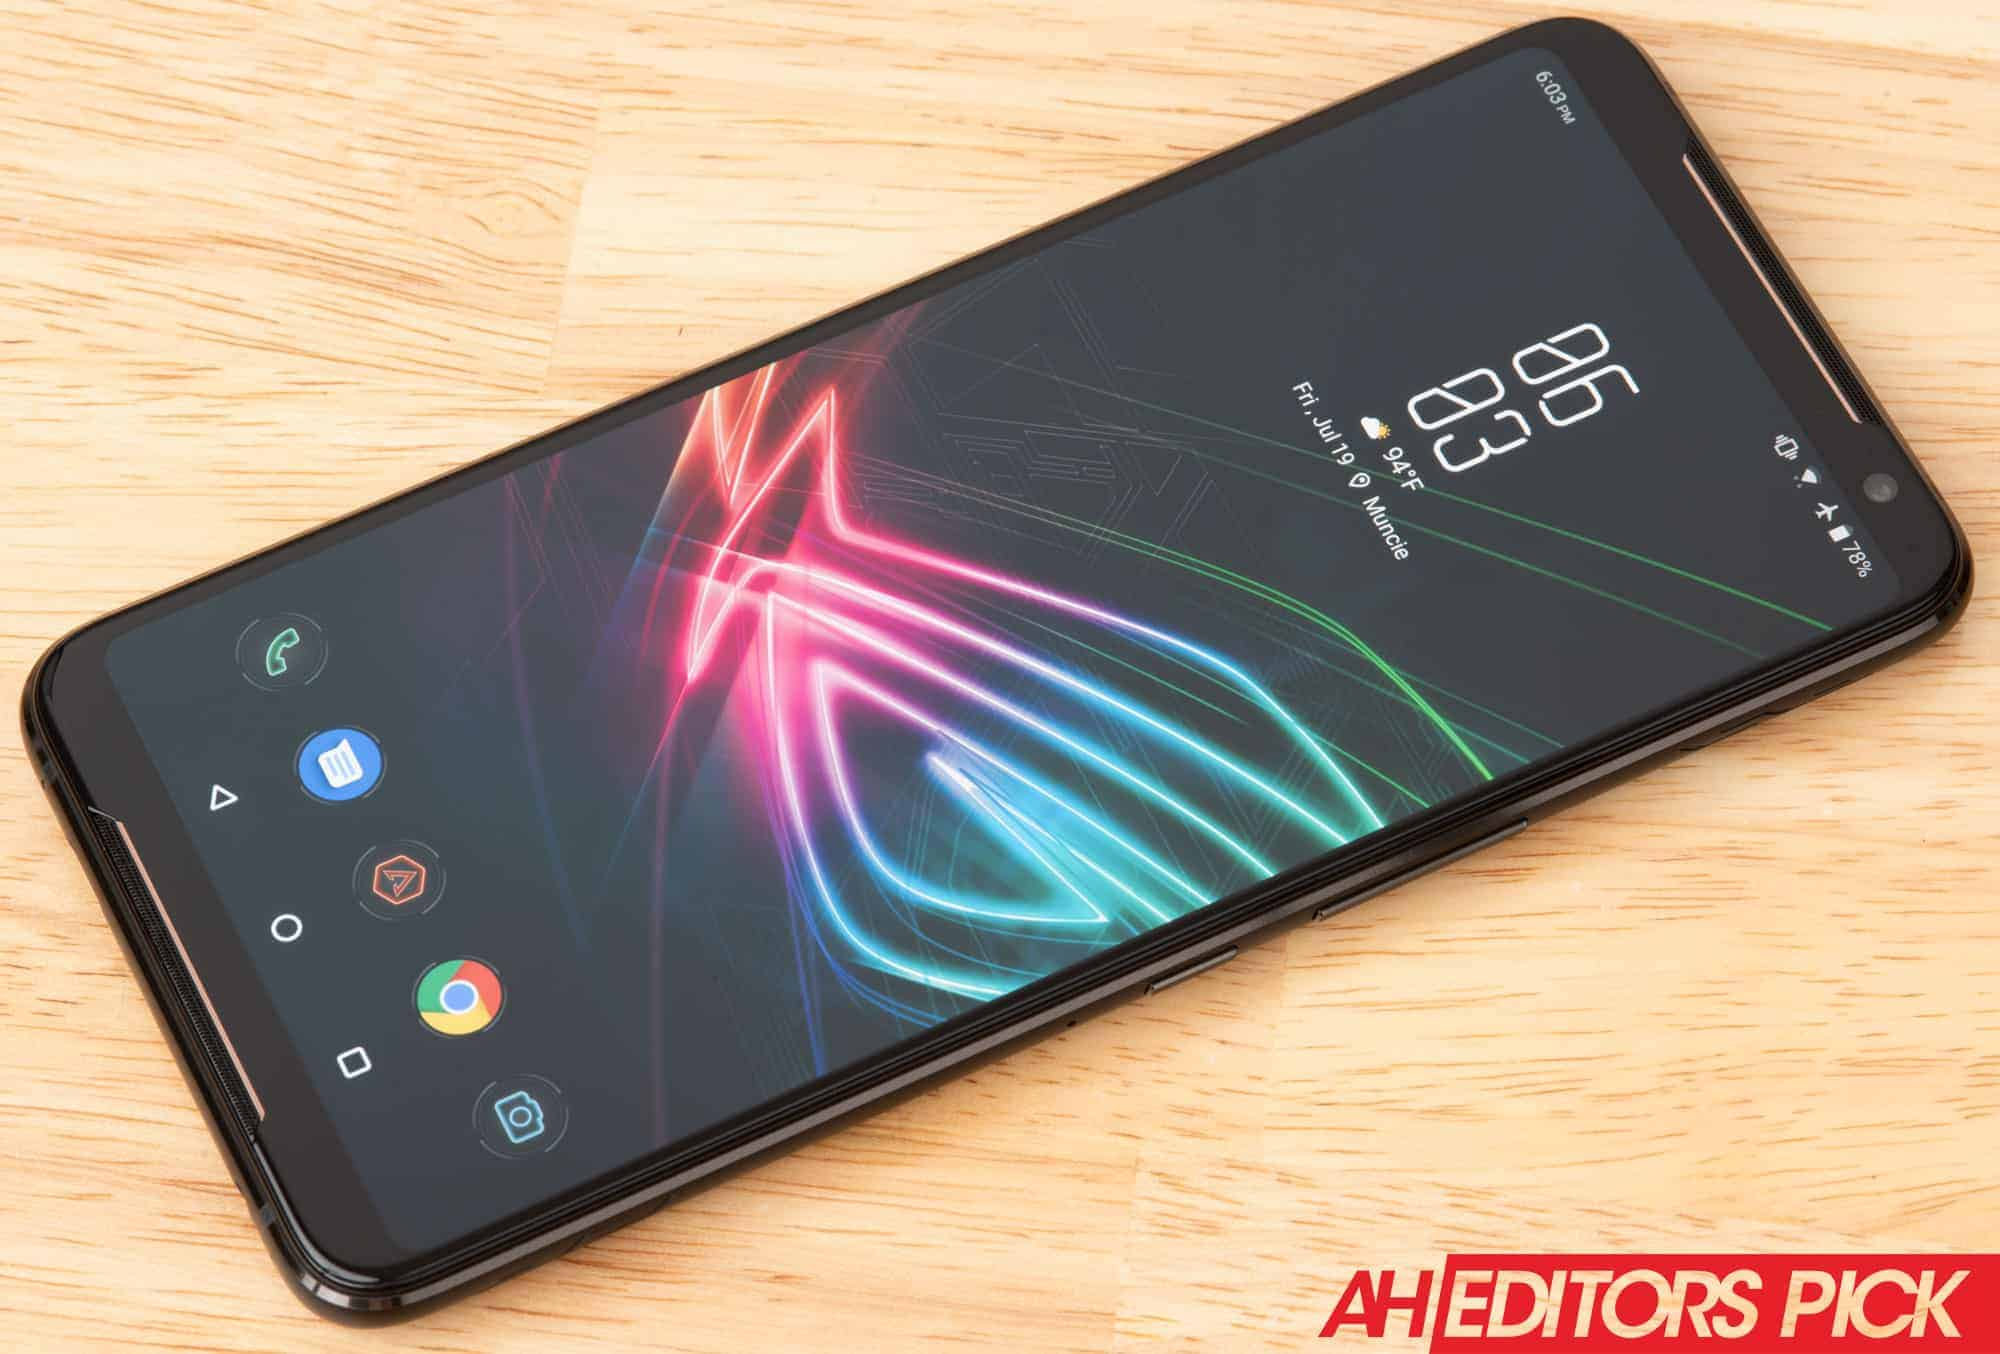 ASUS ROG Phone II Editors Pick